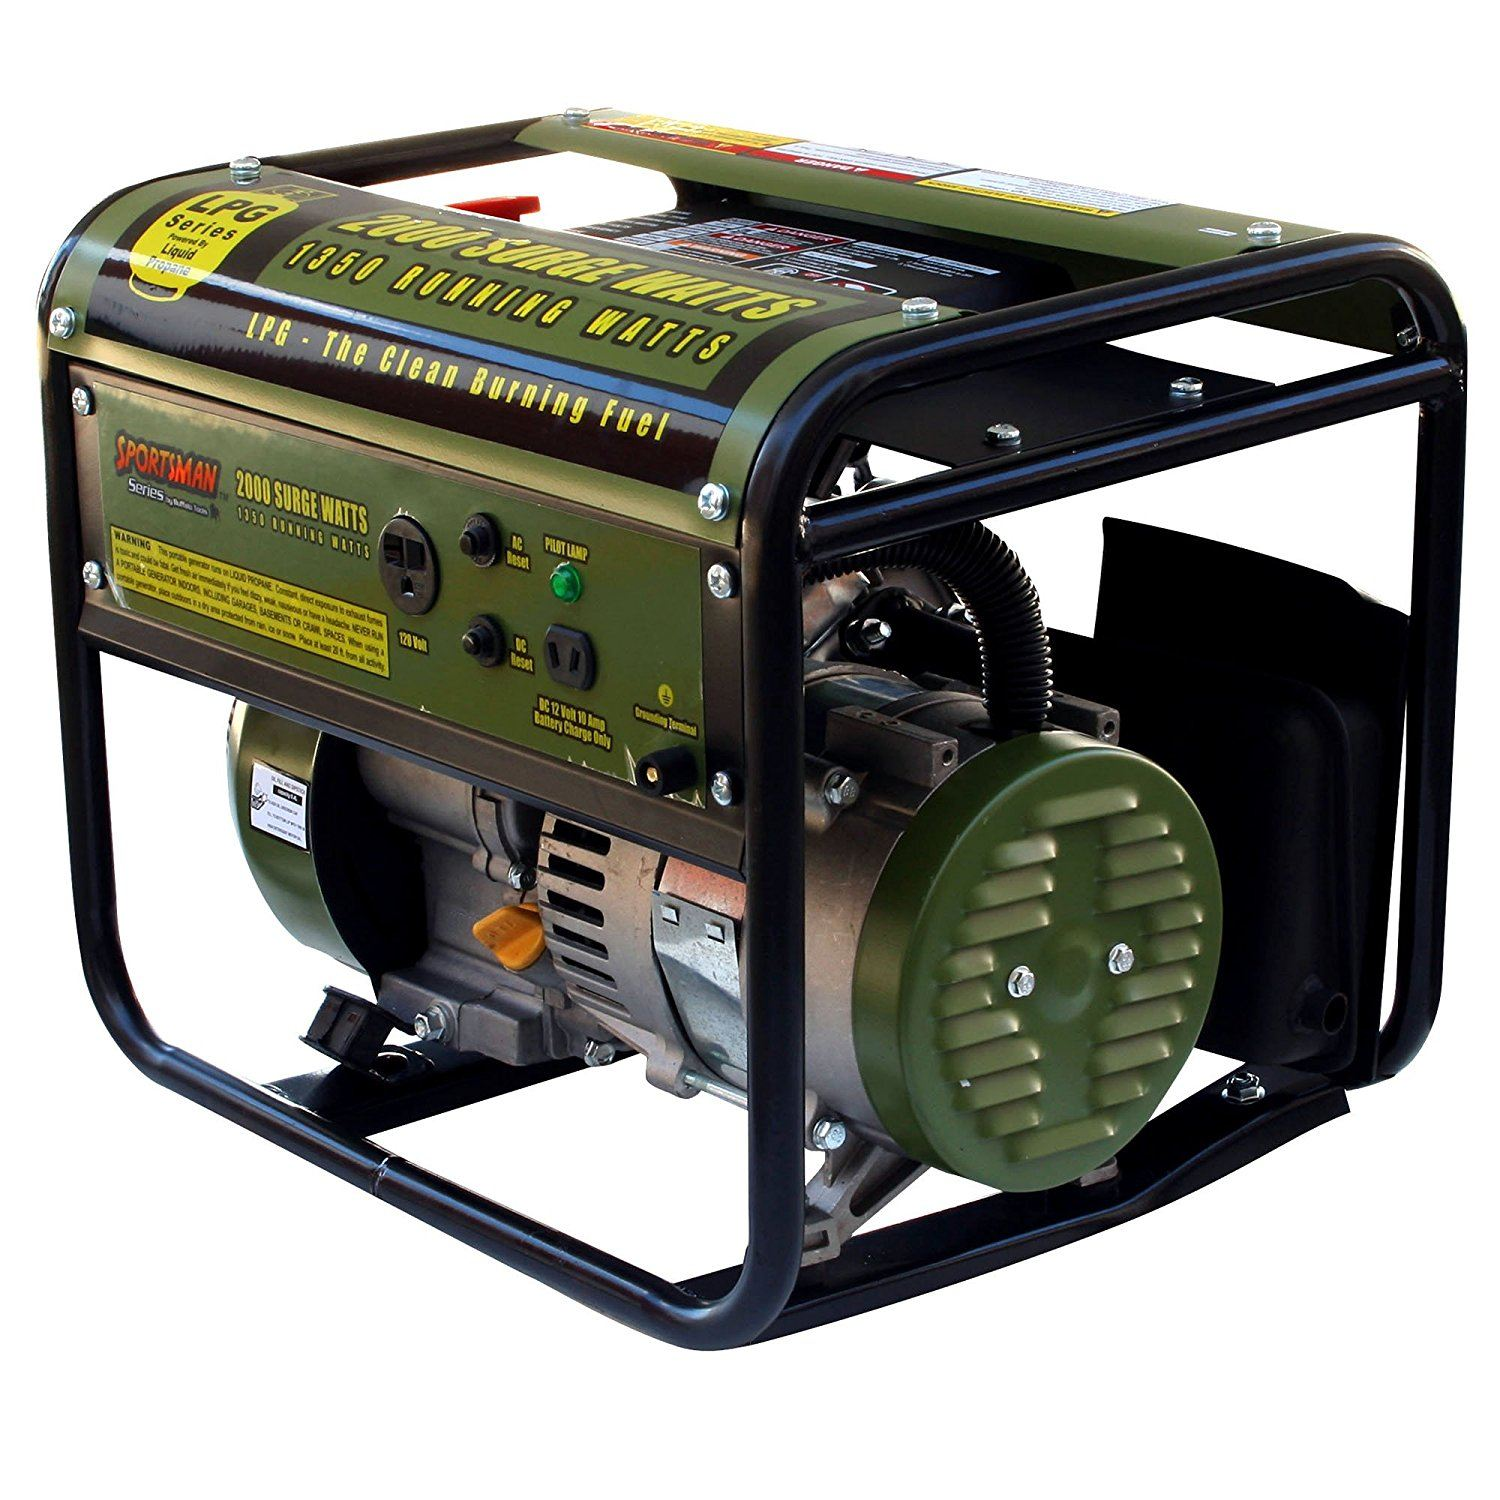 Best Quiet Generator Reviews Get Power In Peace The Identifying Critical Circuits To Run Off Of Portable